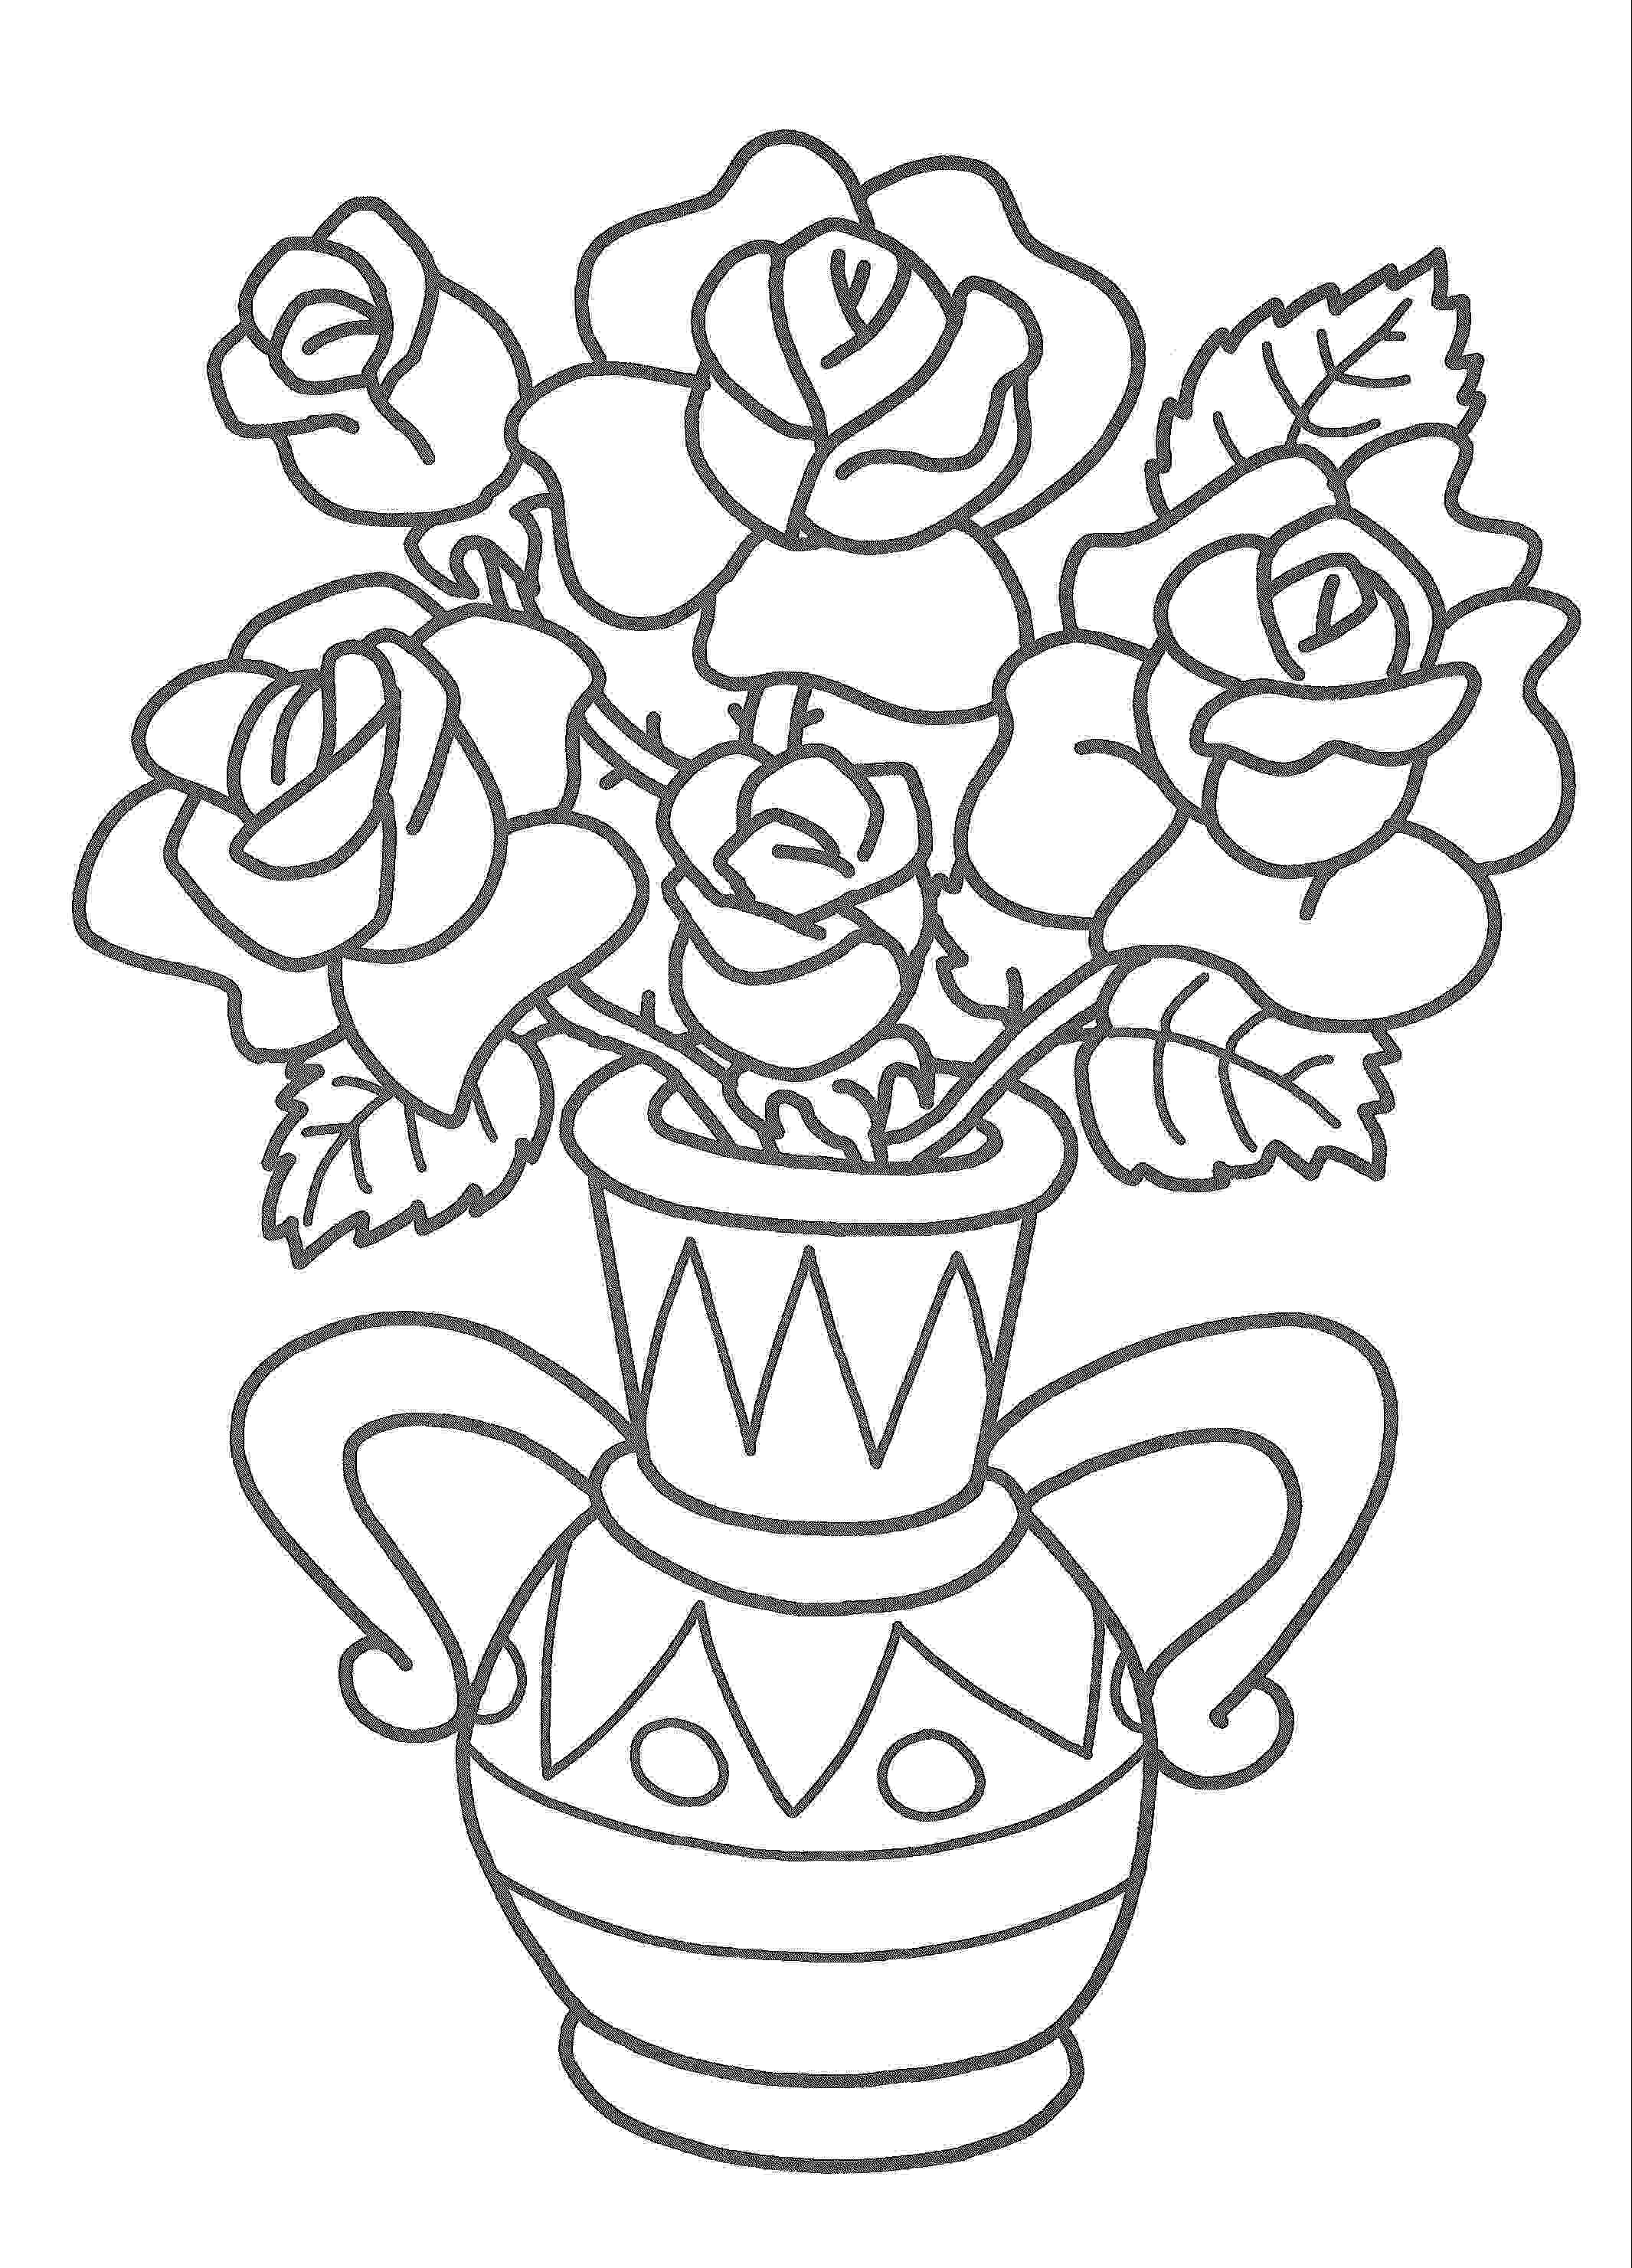 Vase coloring pages to download